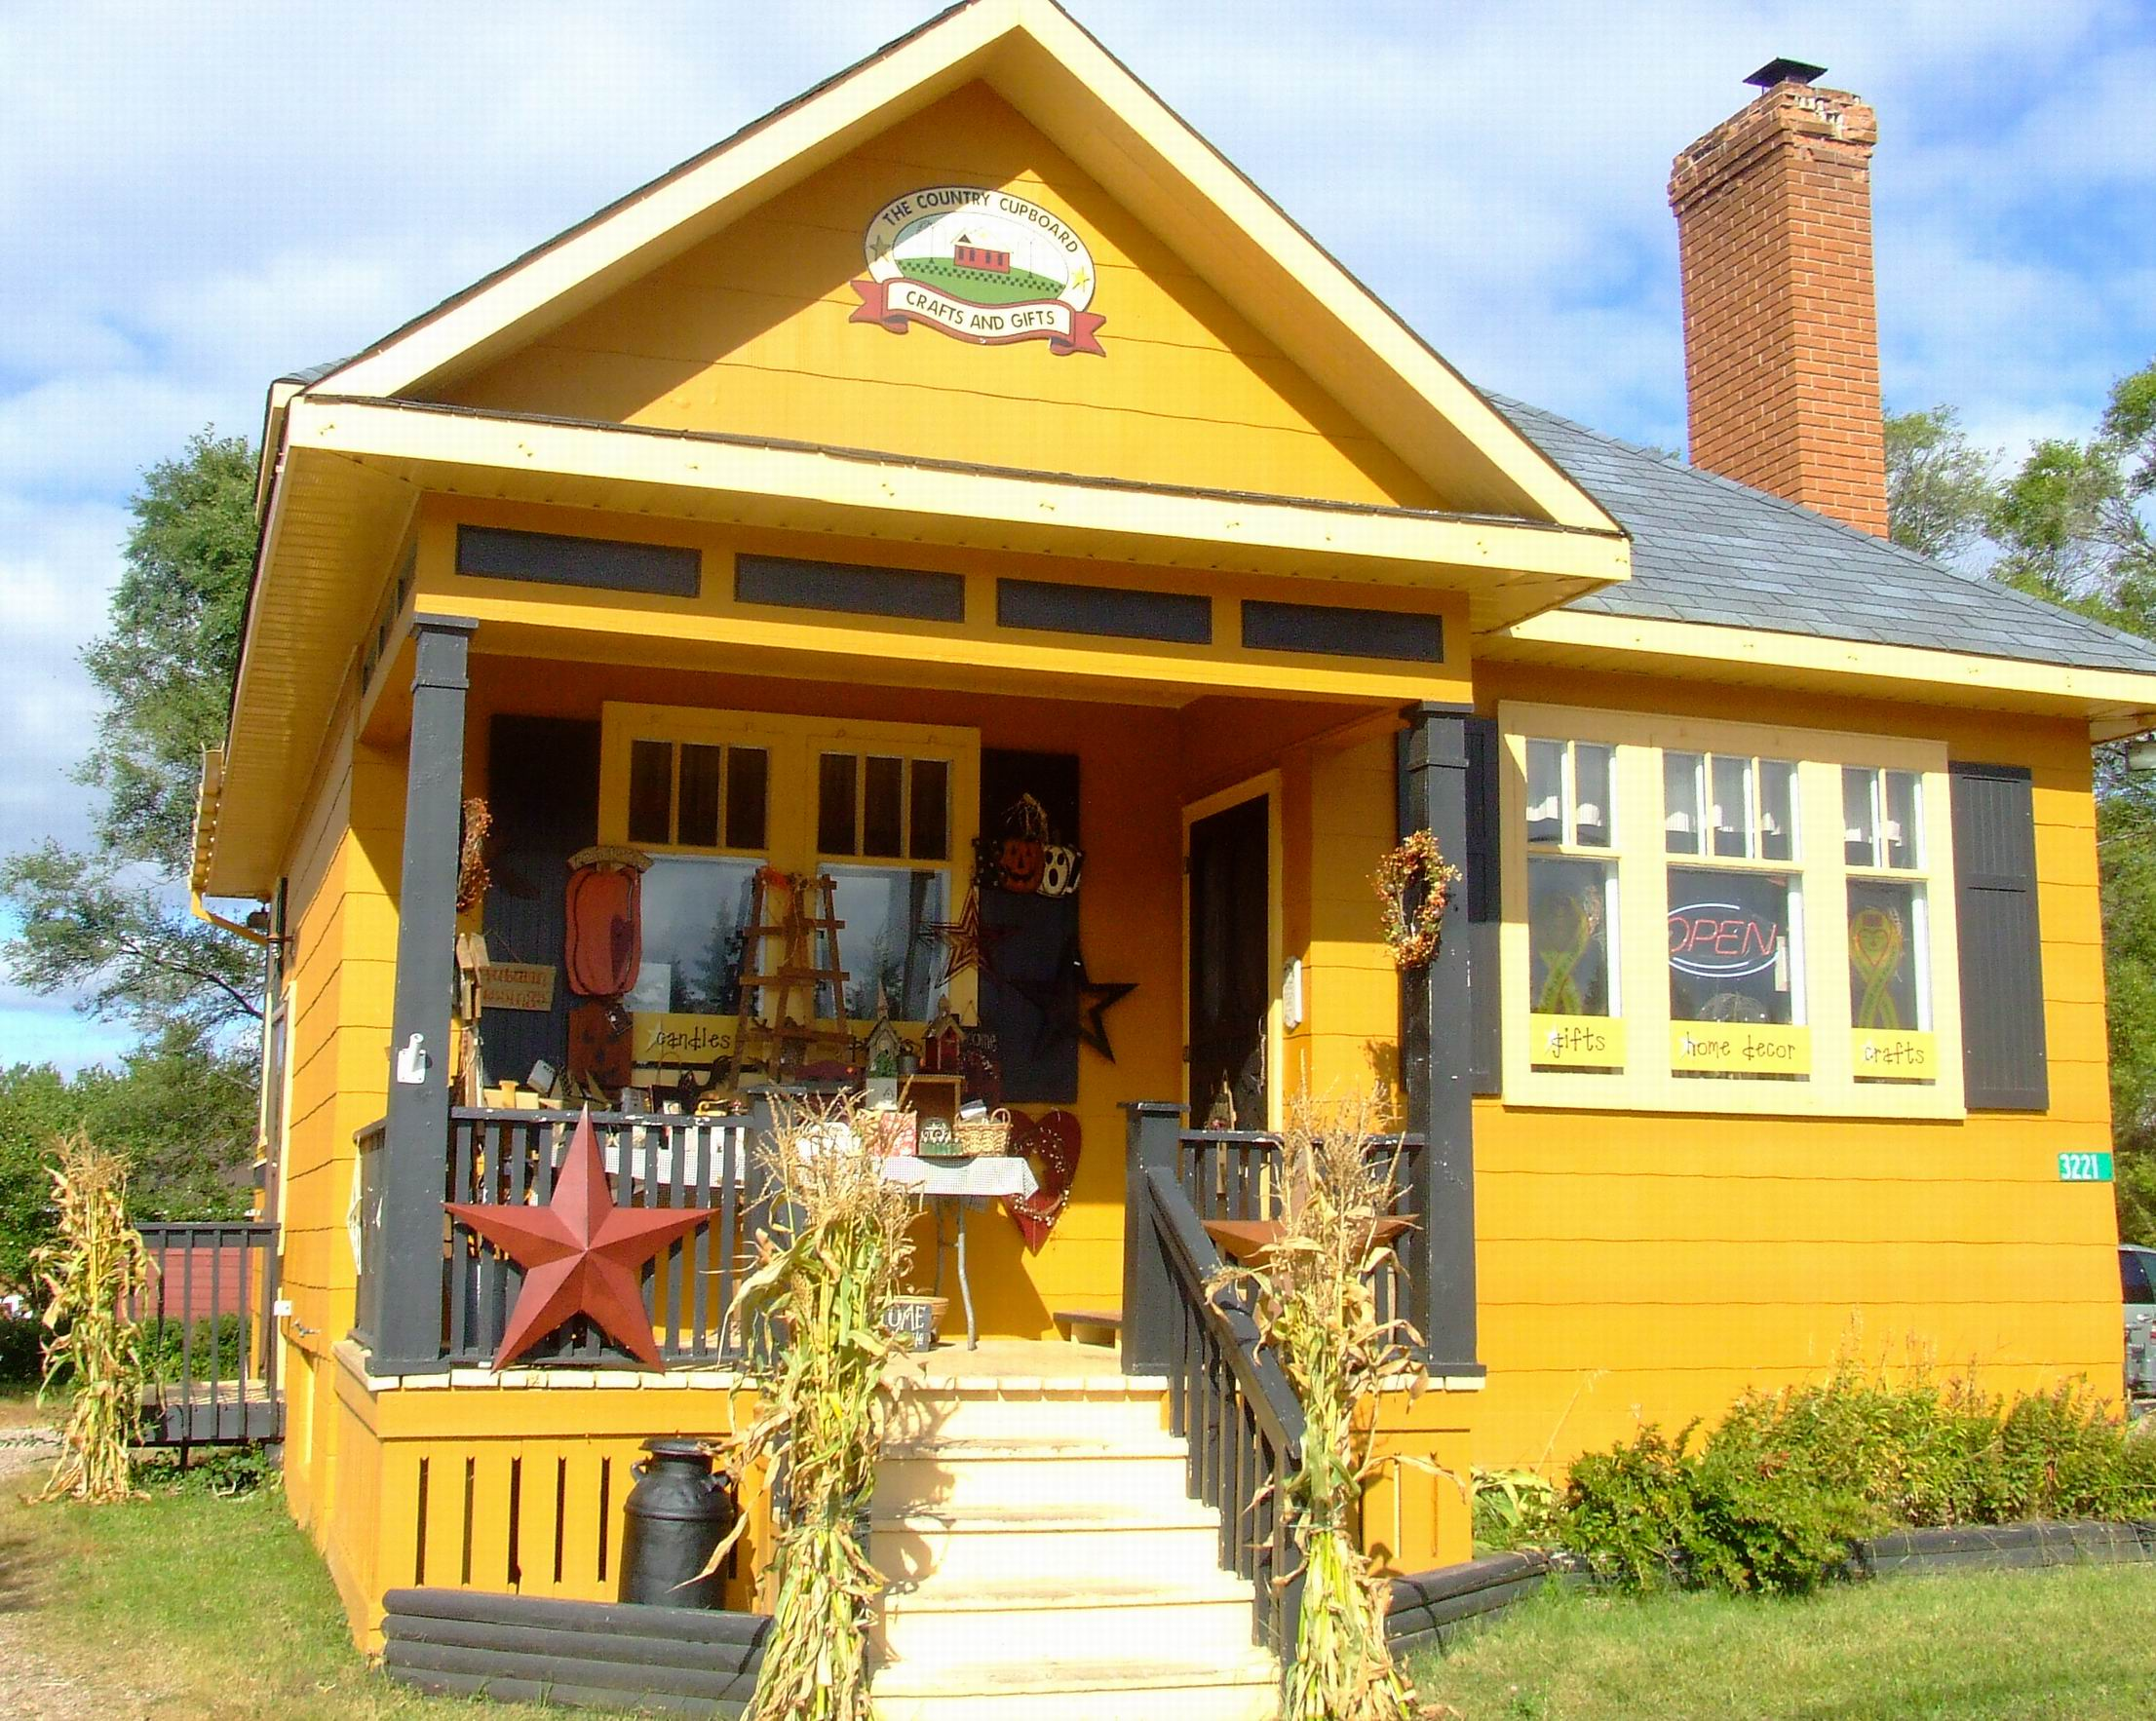 the yellow cottage business The Country Cupboard